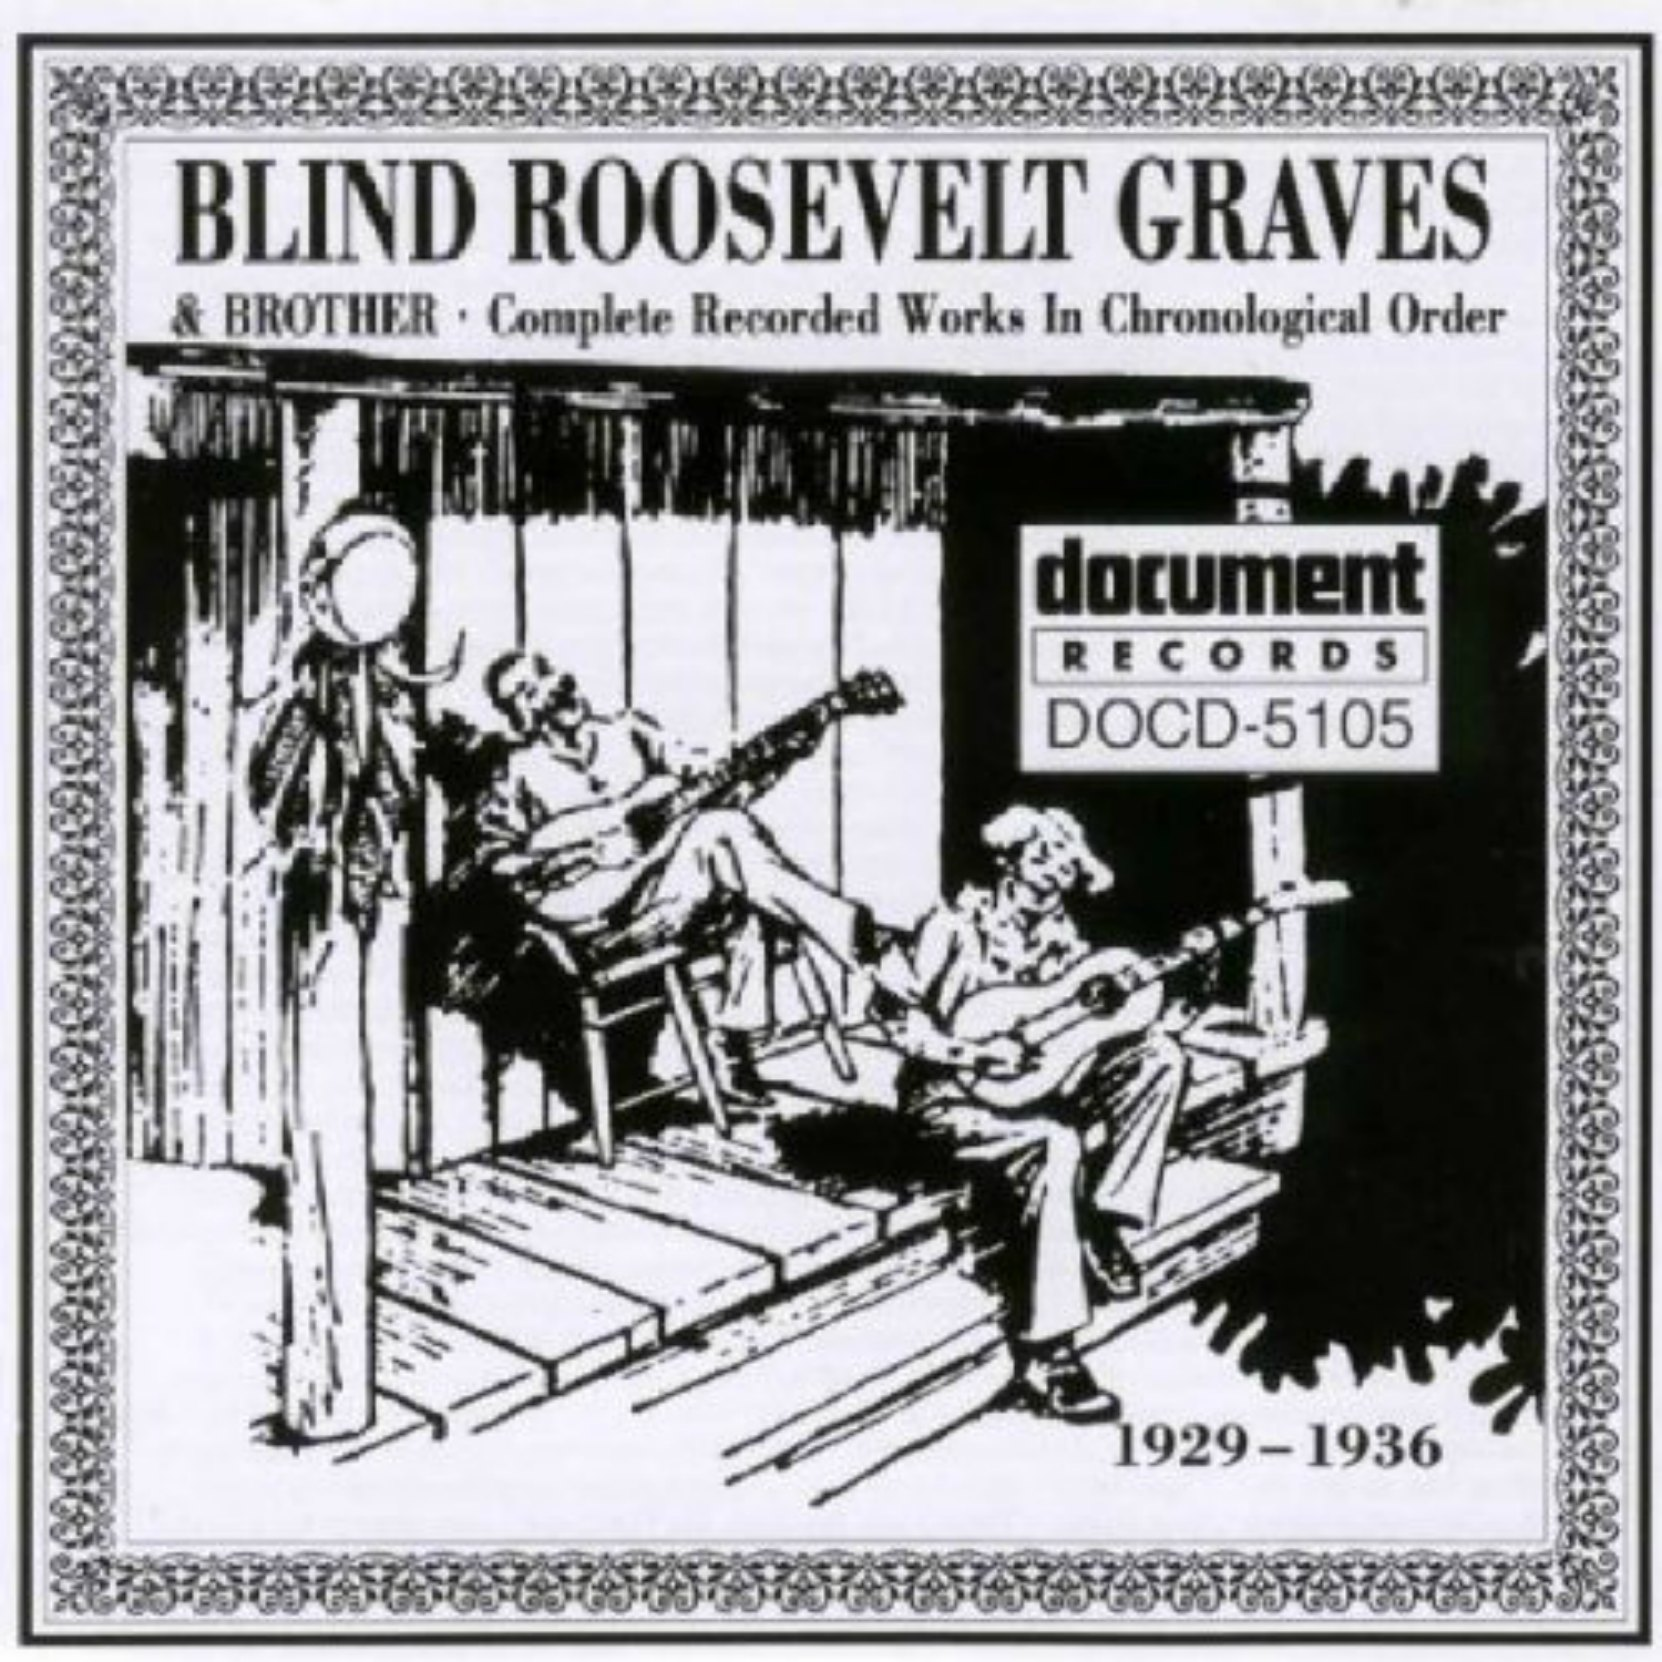 Blind Roosevelt Graves & Brother, Complete Recorded Works 1929-1936, on Document Records. CD cover.